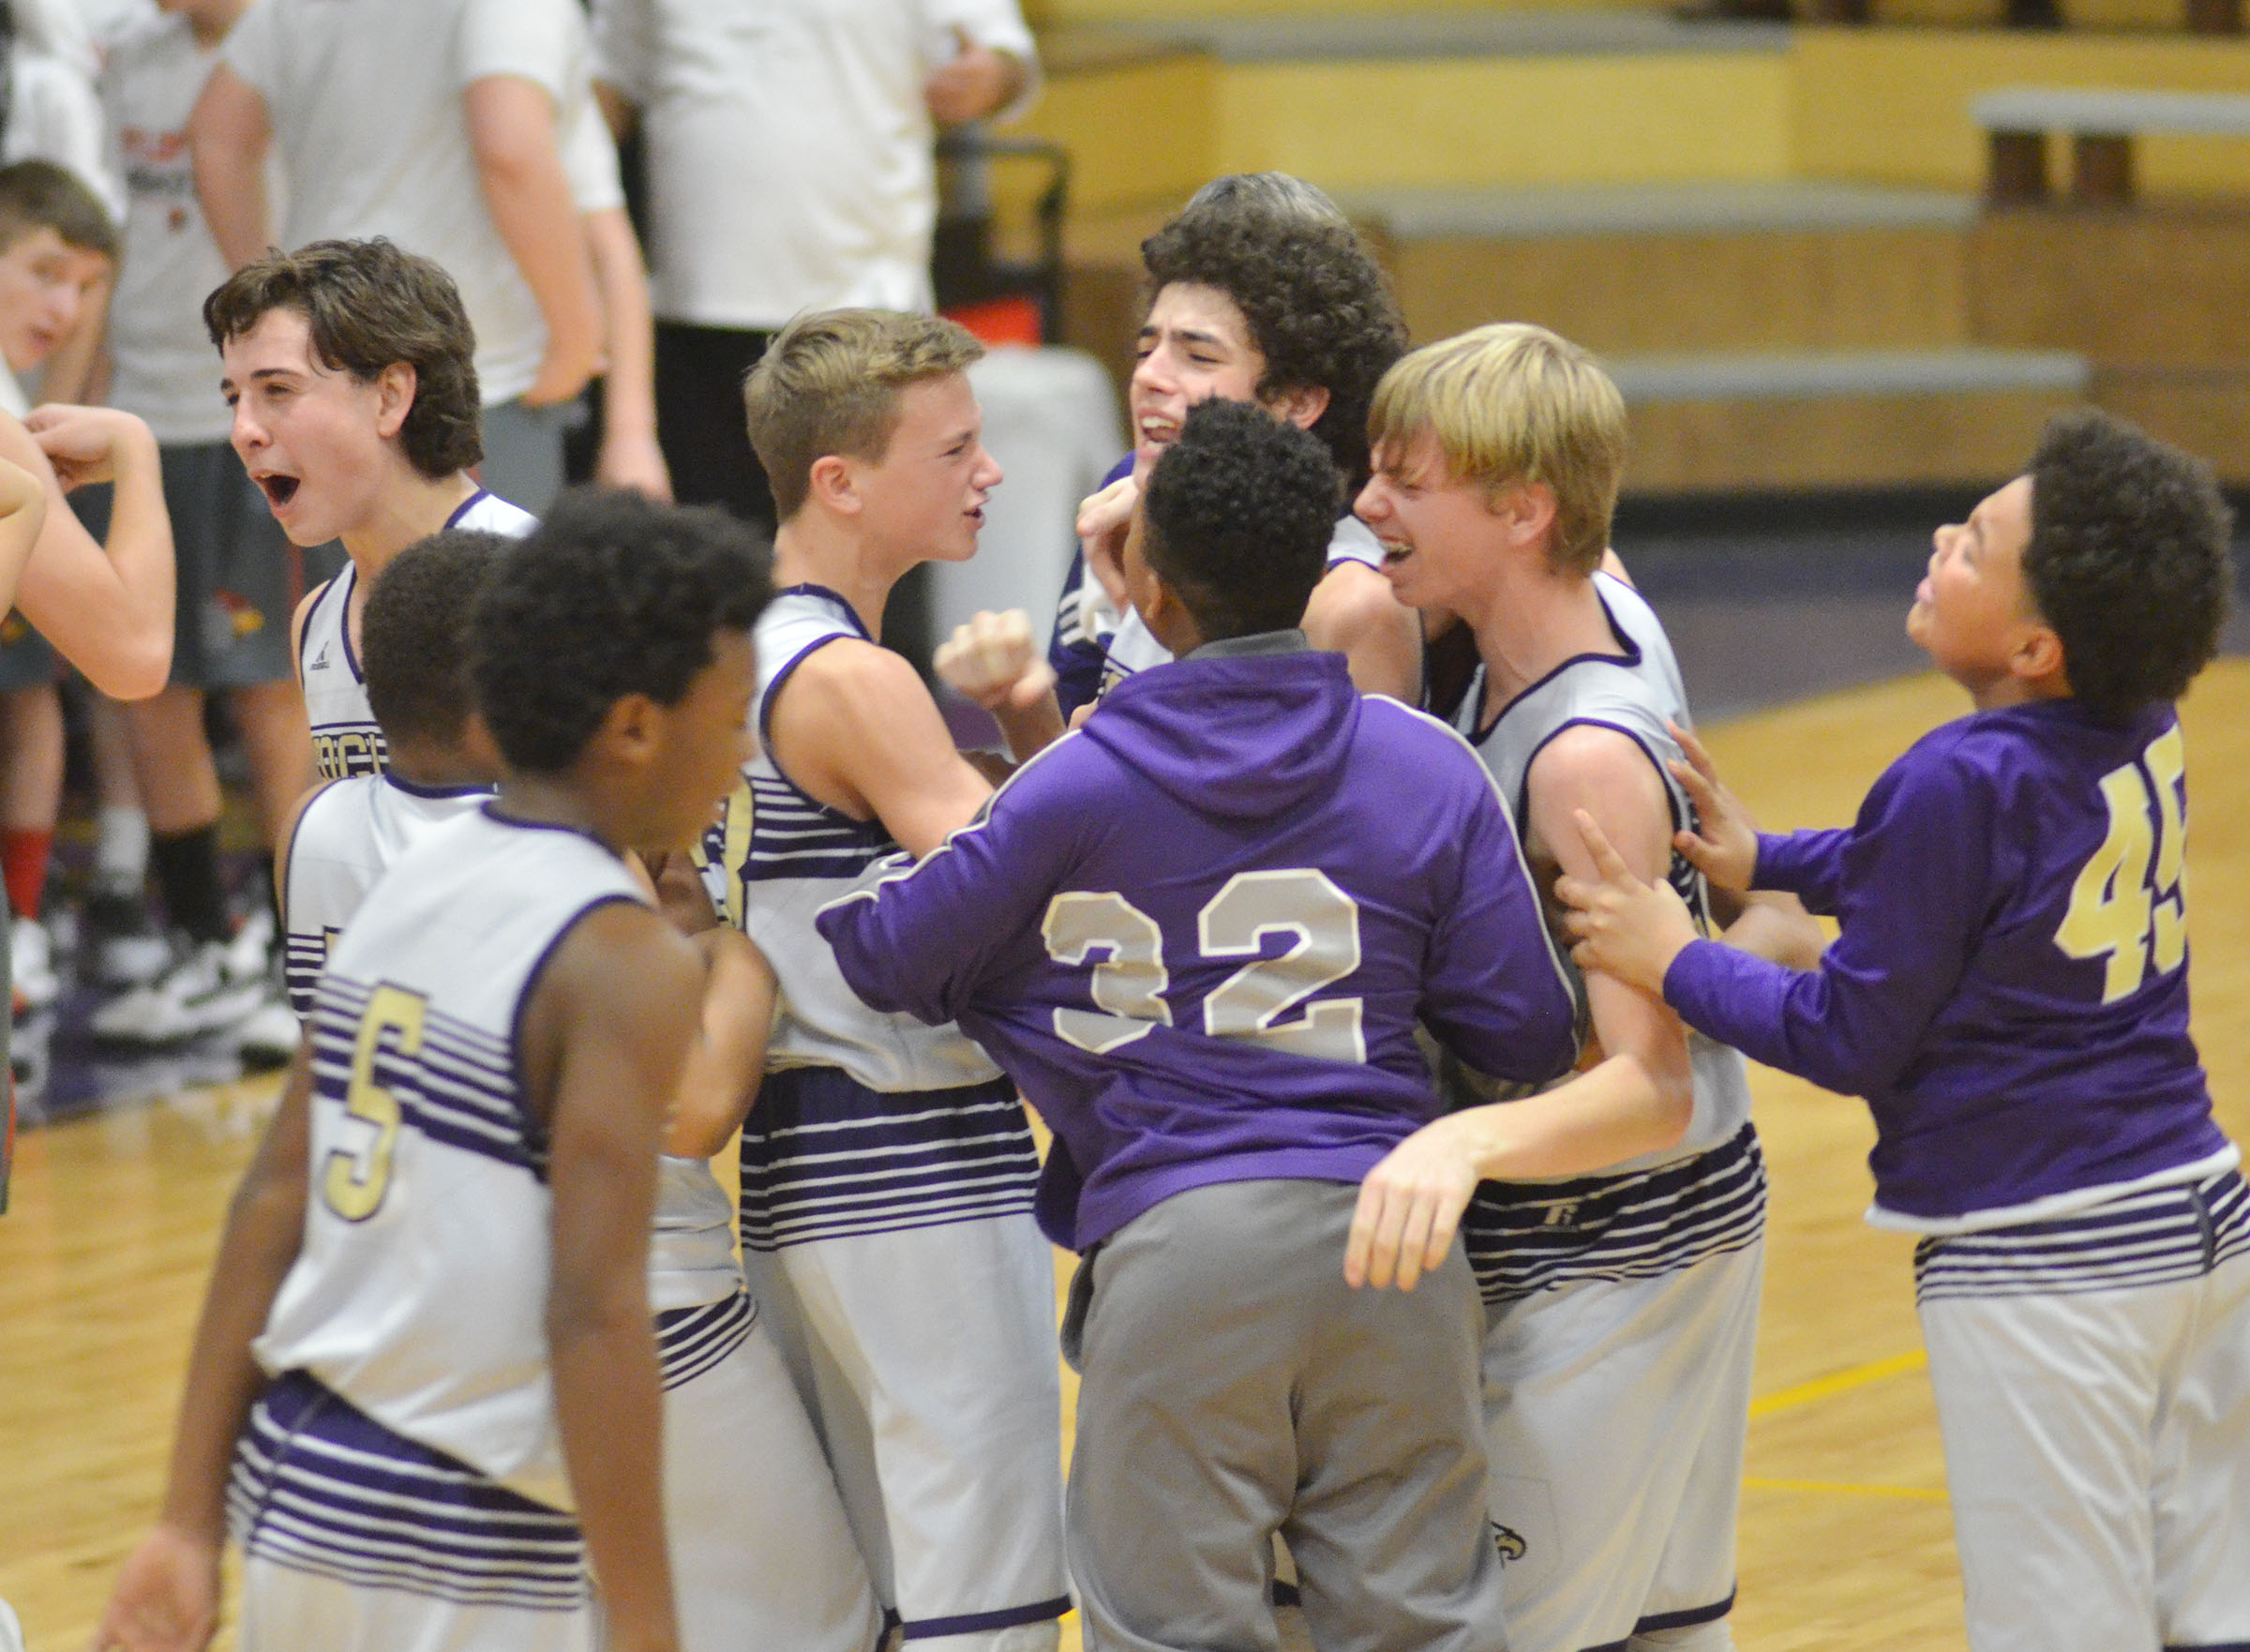 CMS eighth-graders celebrate their win.